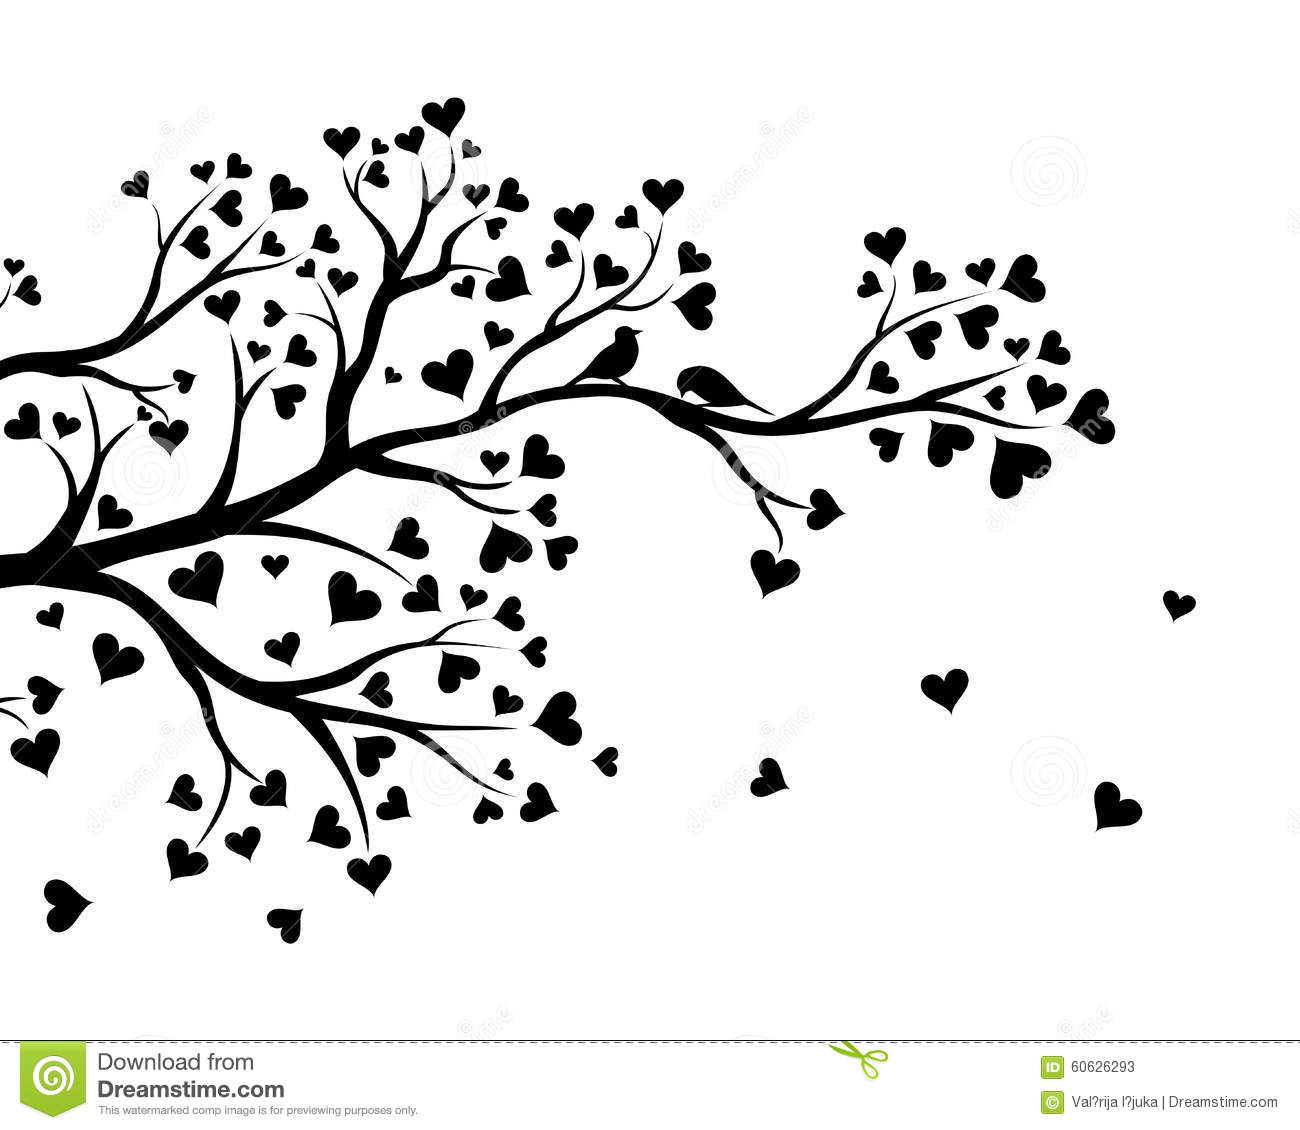 Vector Illustration Of Abstract Valentine Tree Branch With